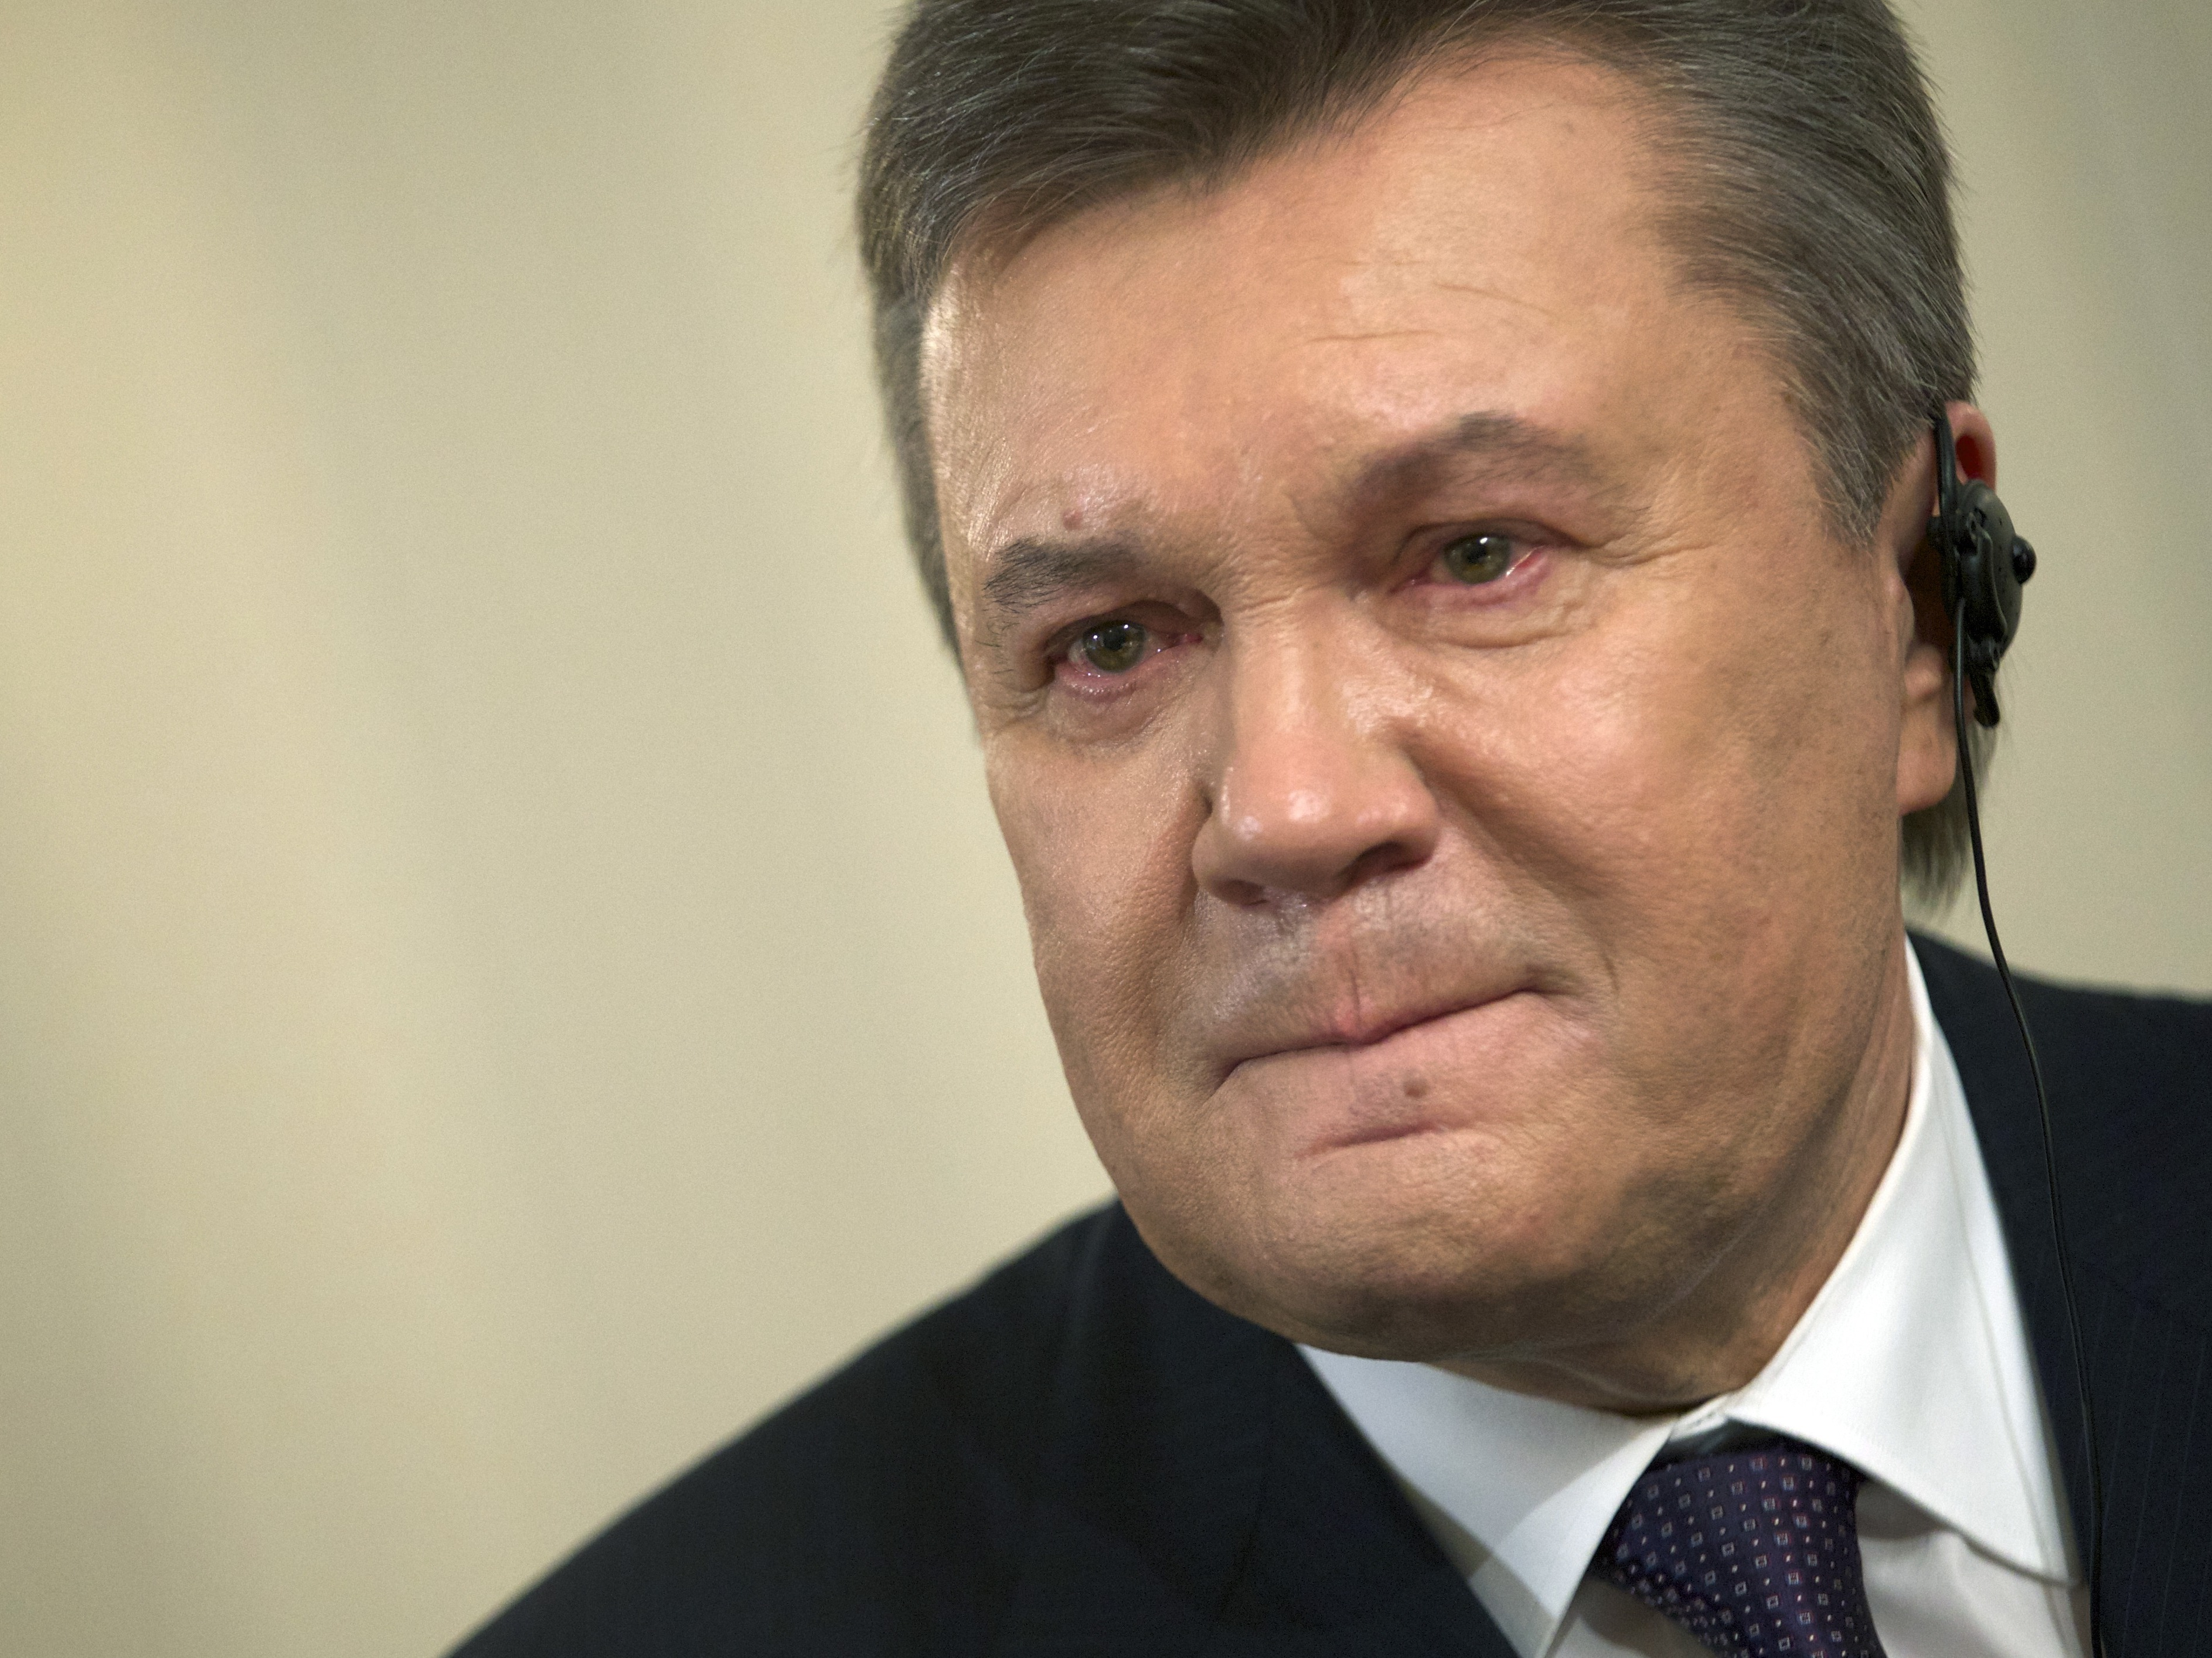 Yanukovych: 'I Was Wrong' To Ask Russian Troops Into Crimea